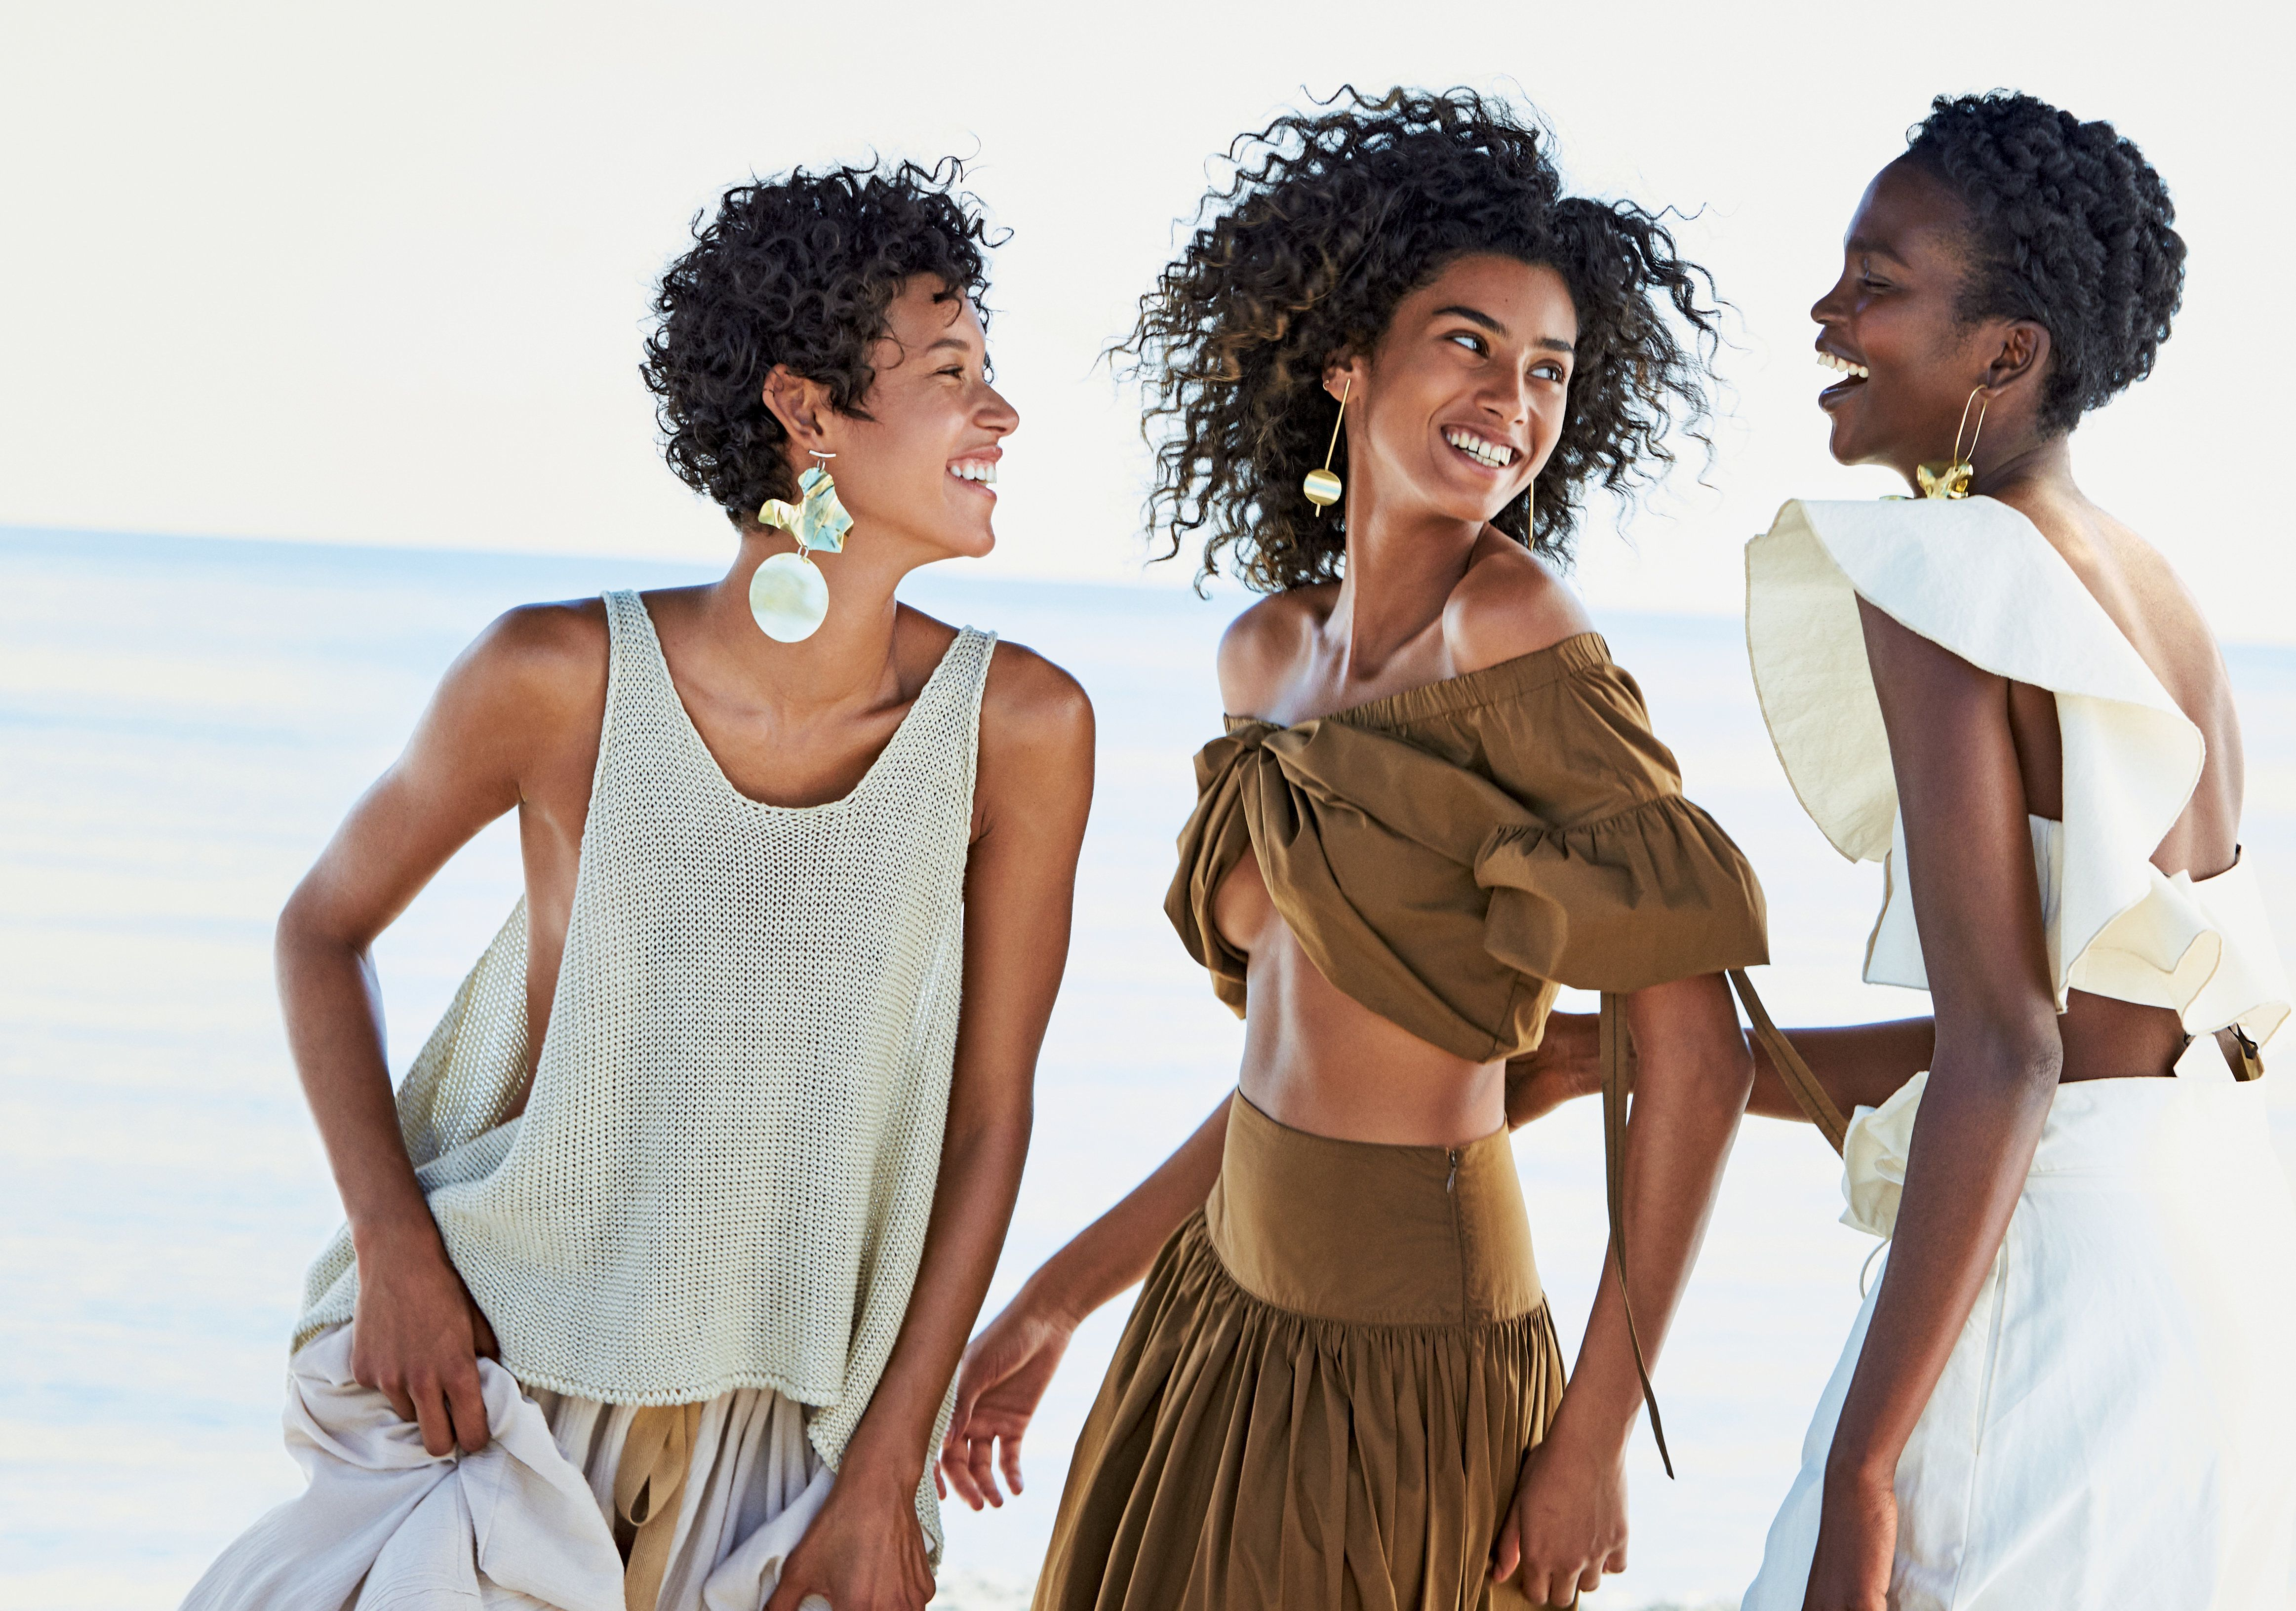 L to R: models Dilone, Imaan Hammam and Aamito Lagum